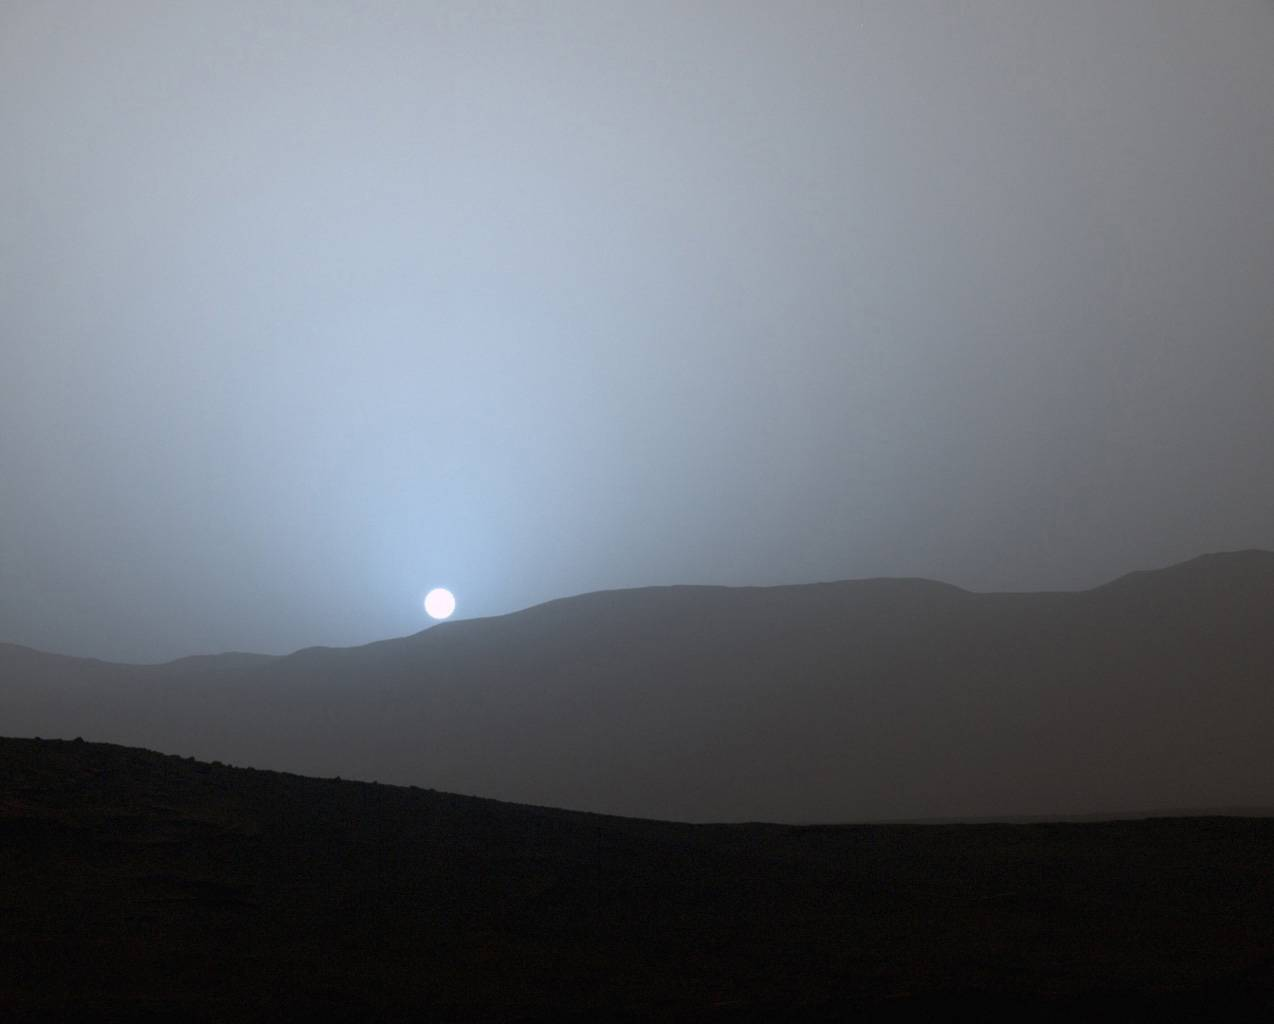 The sun sets over Mars on April 15, 2015. This summer NASA will launch a rover to collect samples of the Martian surface that will eventually be brought back to Earth. | NASA /VIA GETTY IMAGES /VIA BLOOMBERG